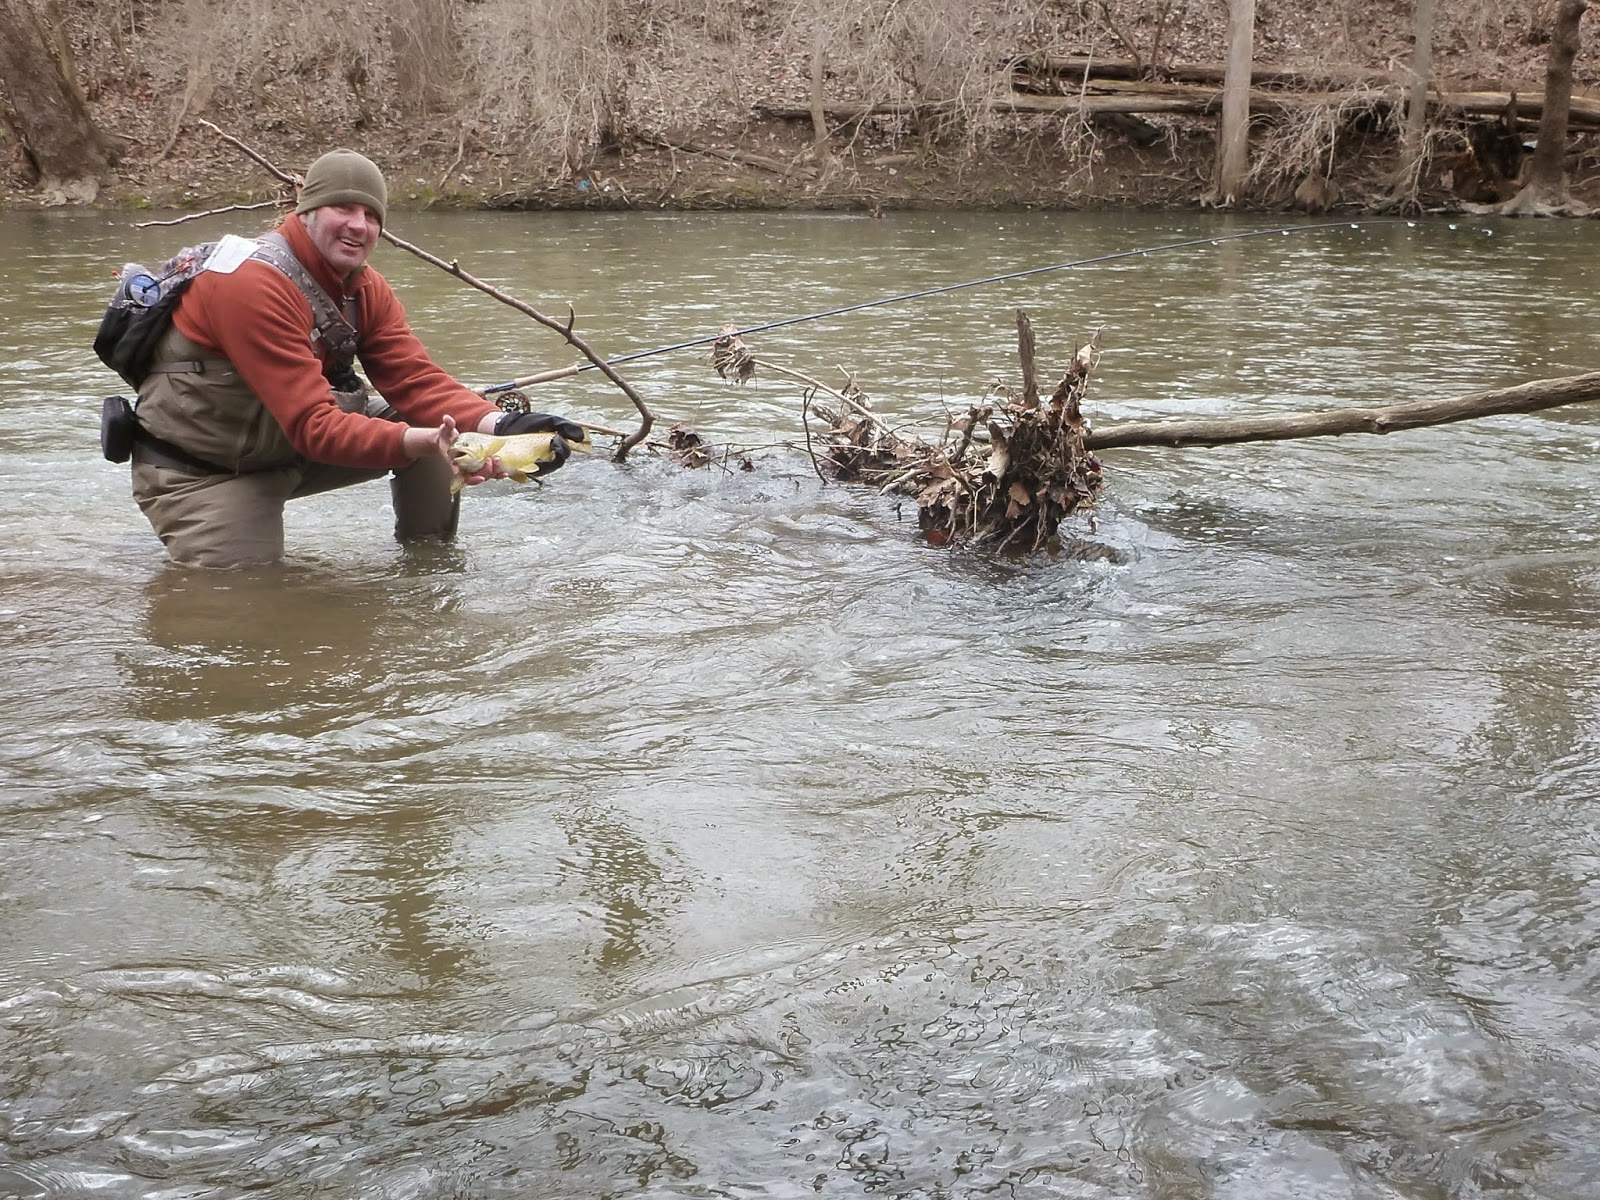 Ohio trophy trout hunter mad river march 27 2015 for Trout fishing in ohio